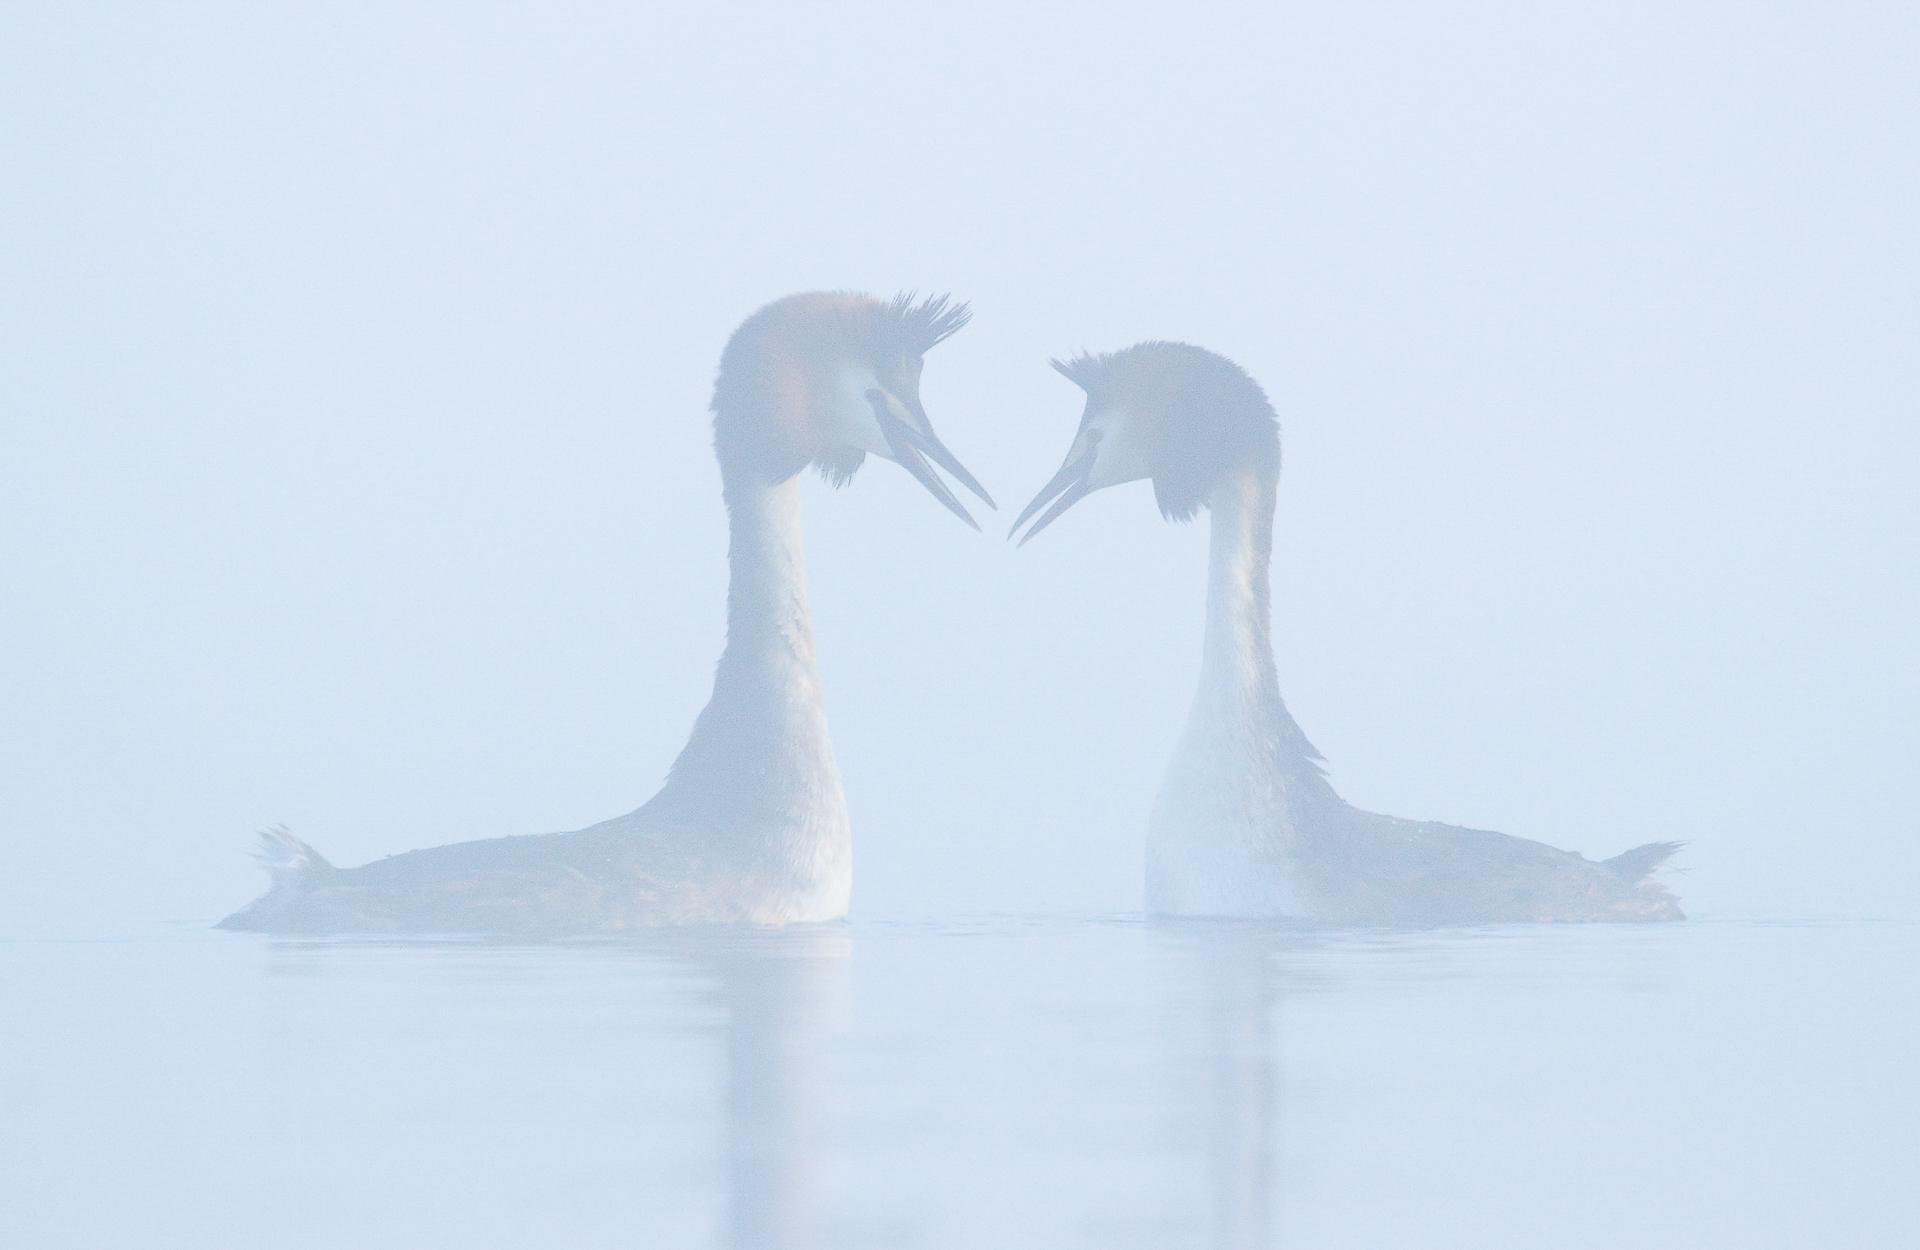 Grebes in love